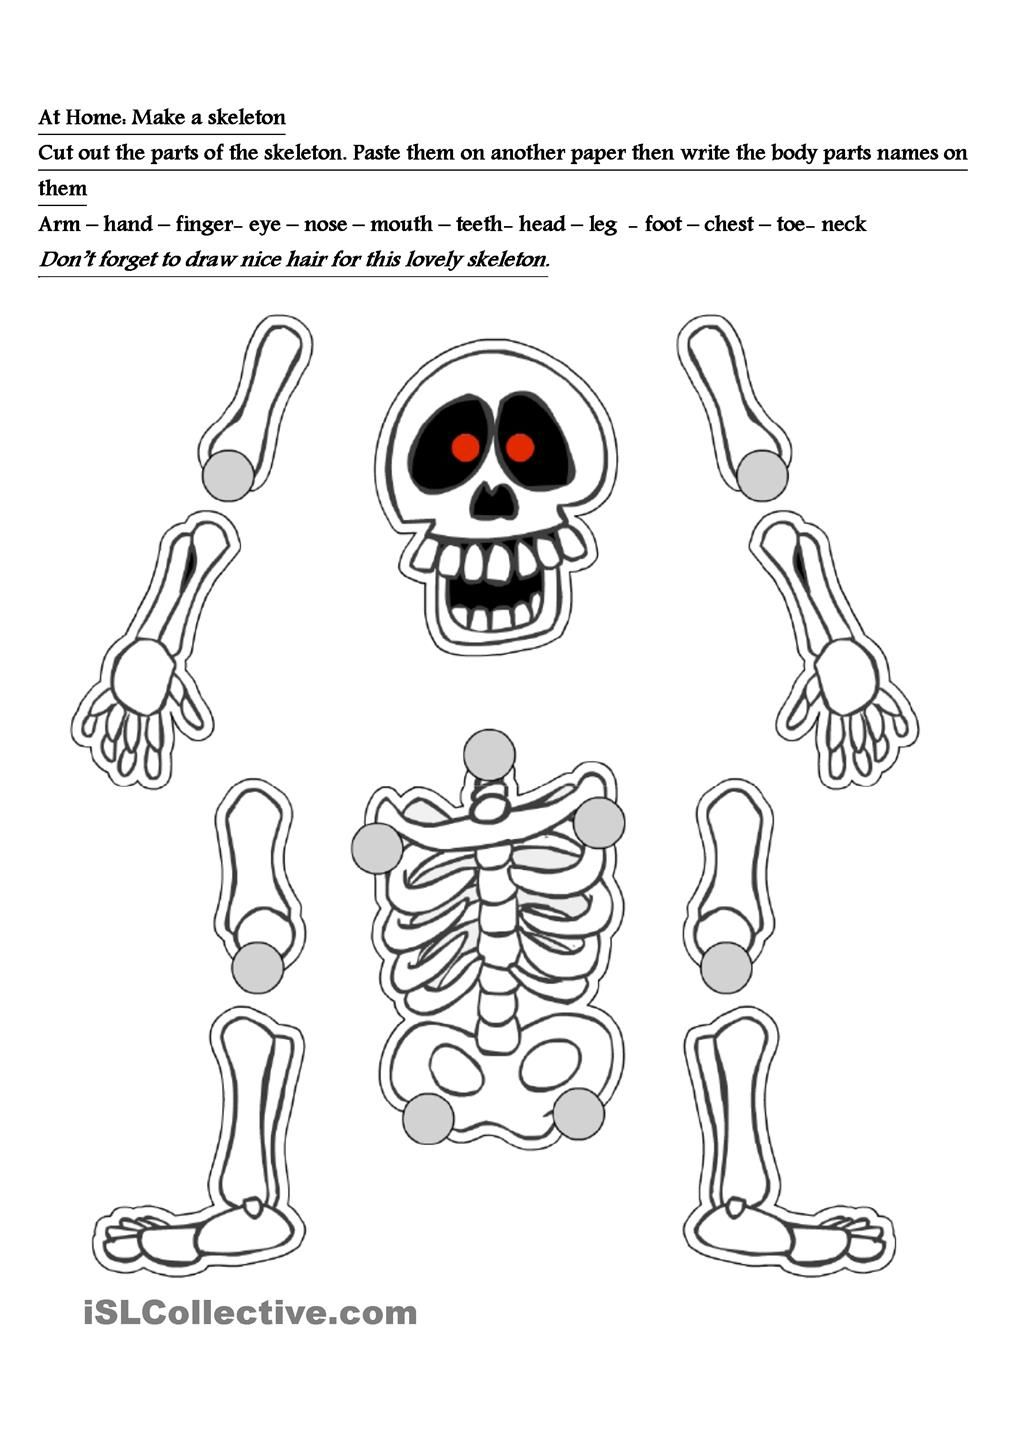 skeleton worksheet free esl worksheets dia de los muertos pinterest worksheets. Black Bedroom Furniture Sets. Home Design Ideas